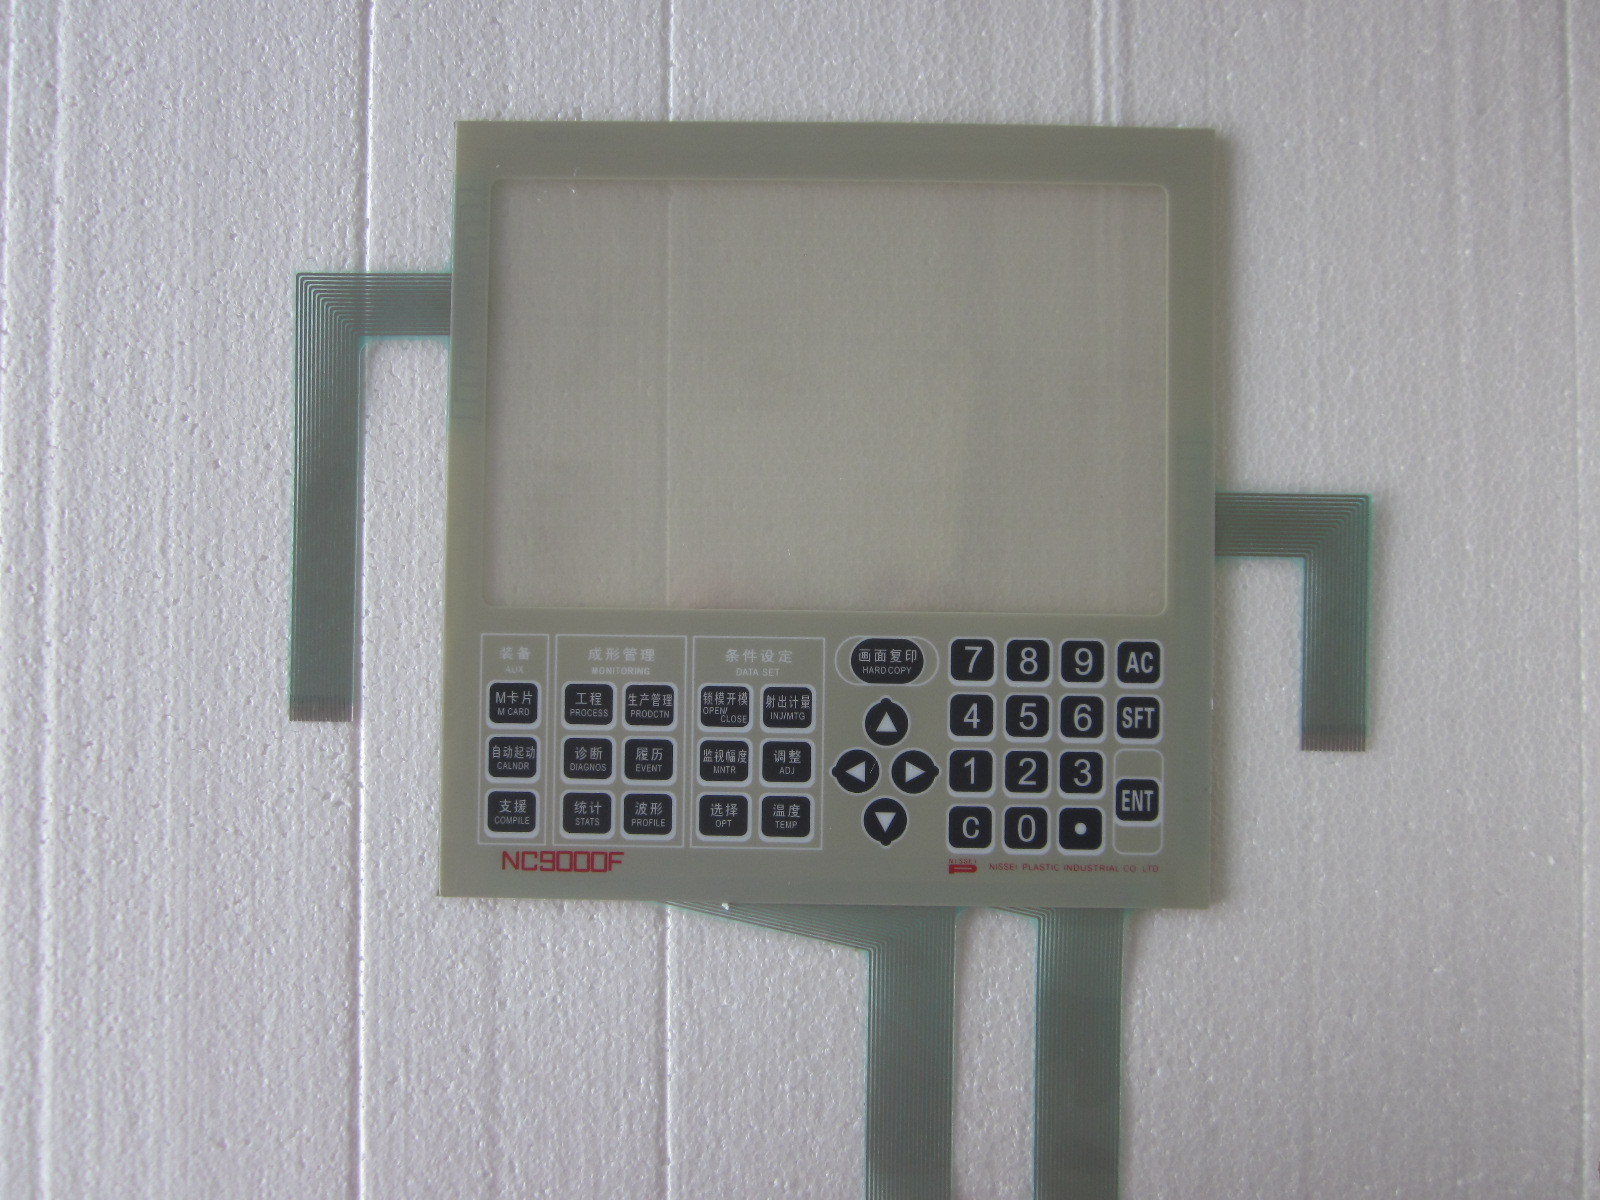 NC9300T NC90F Touch Glass screen for HMI Panel repair do it yourself New Have in stock